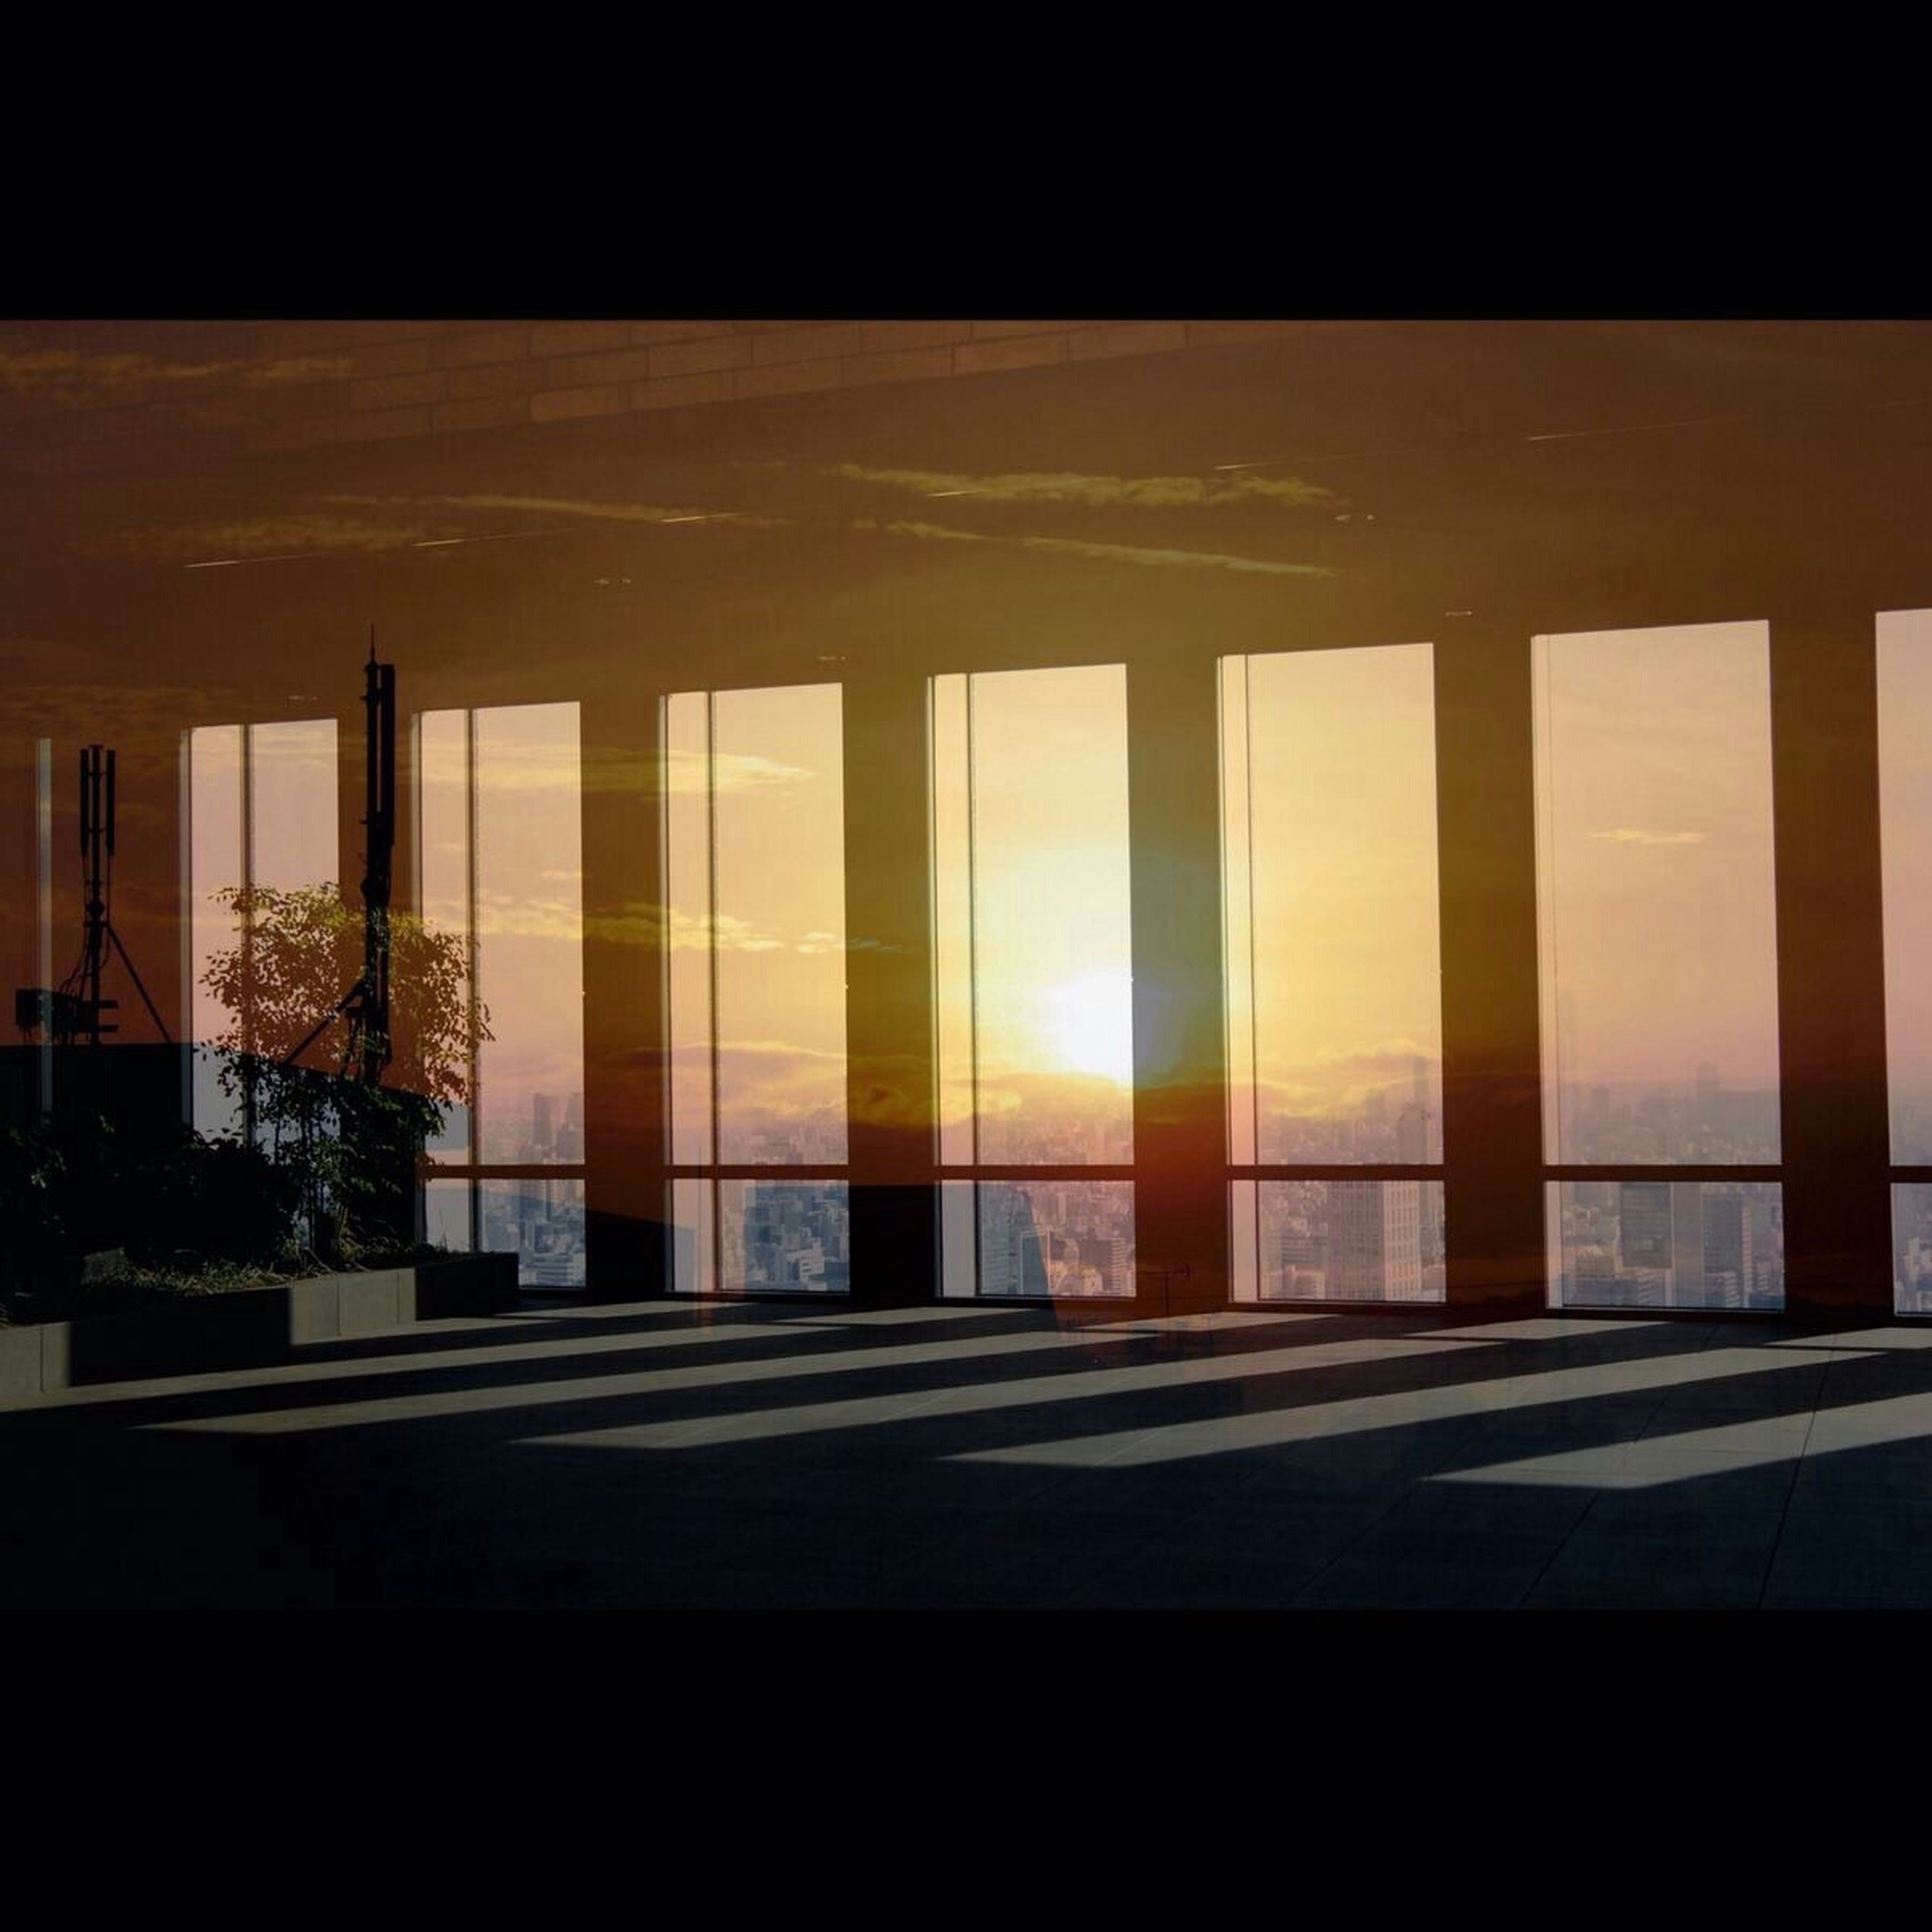 architecture, built structure, sunlight, building exterior, sunset, indoors, window, sky, architectural column, glass - material, sun, sea, no people, building, silhouette, shadow, water, day, wood - material